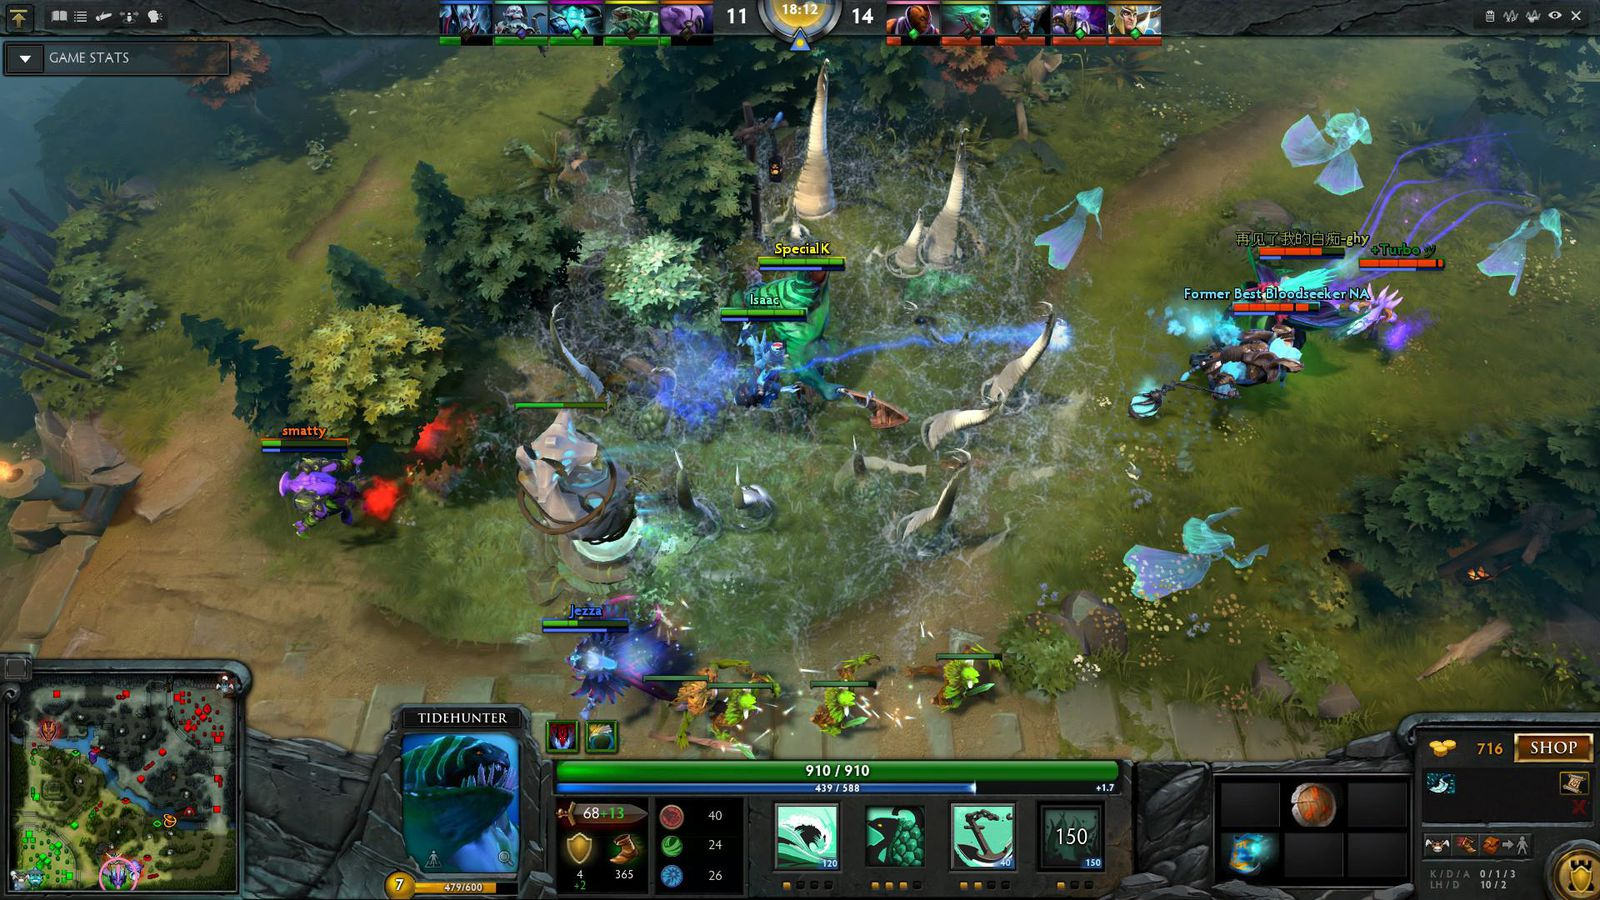 Dota 2 Is Getting A Steam VR Spectator Mode According To Valve Teaser Polygon